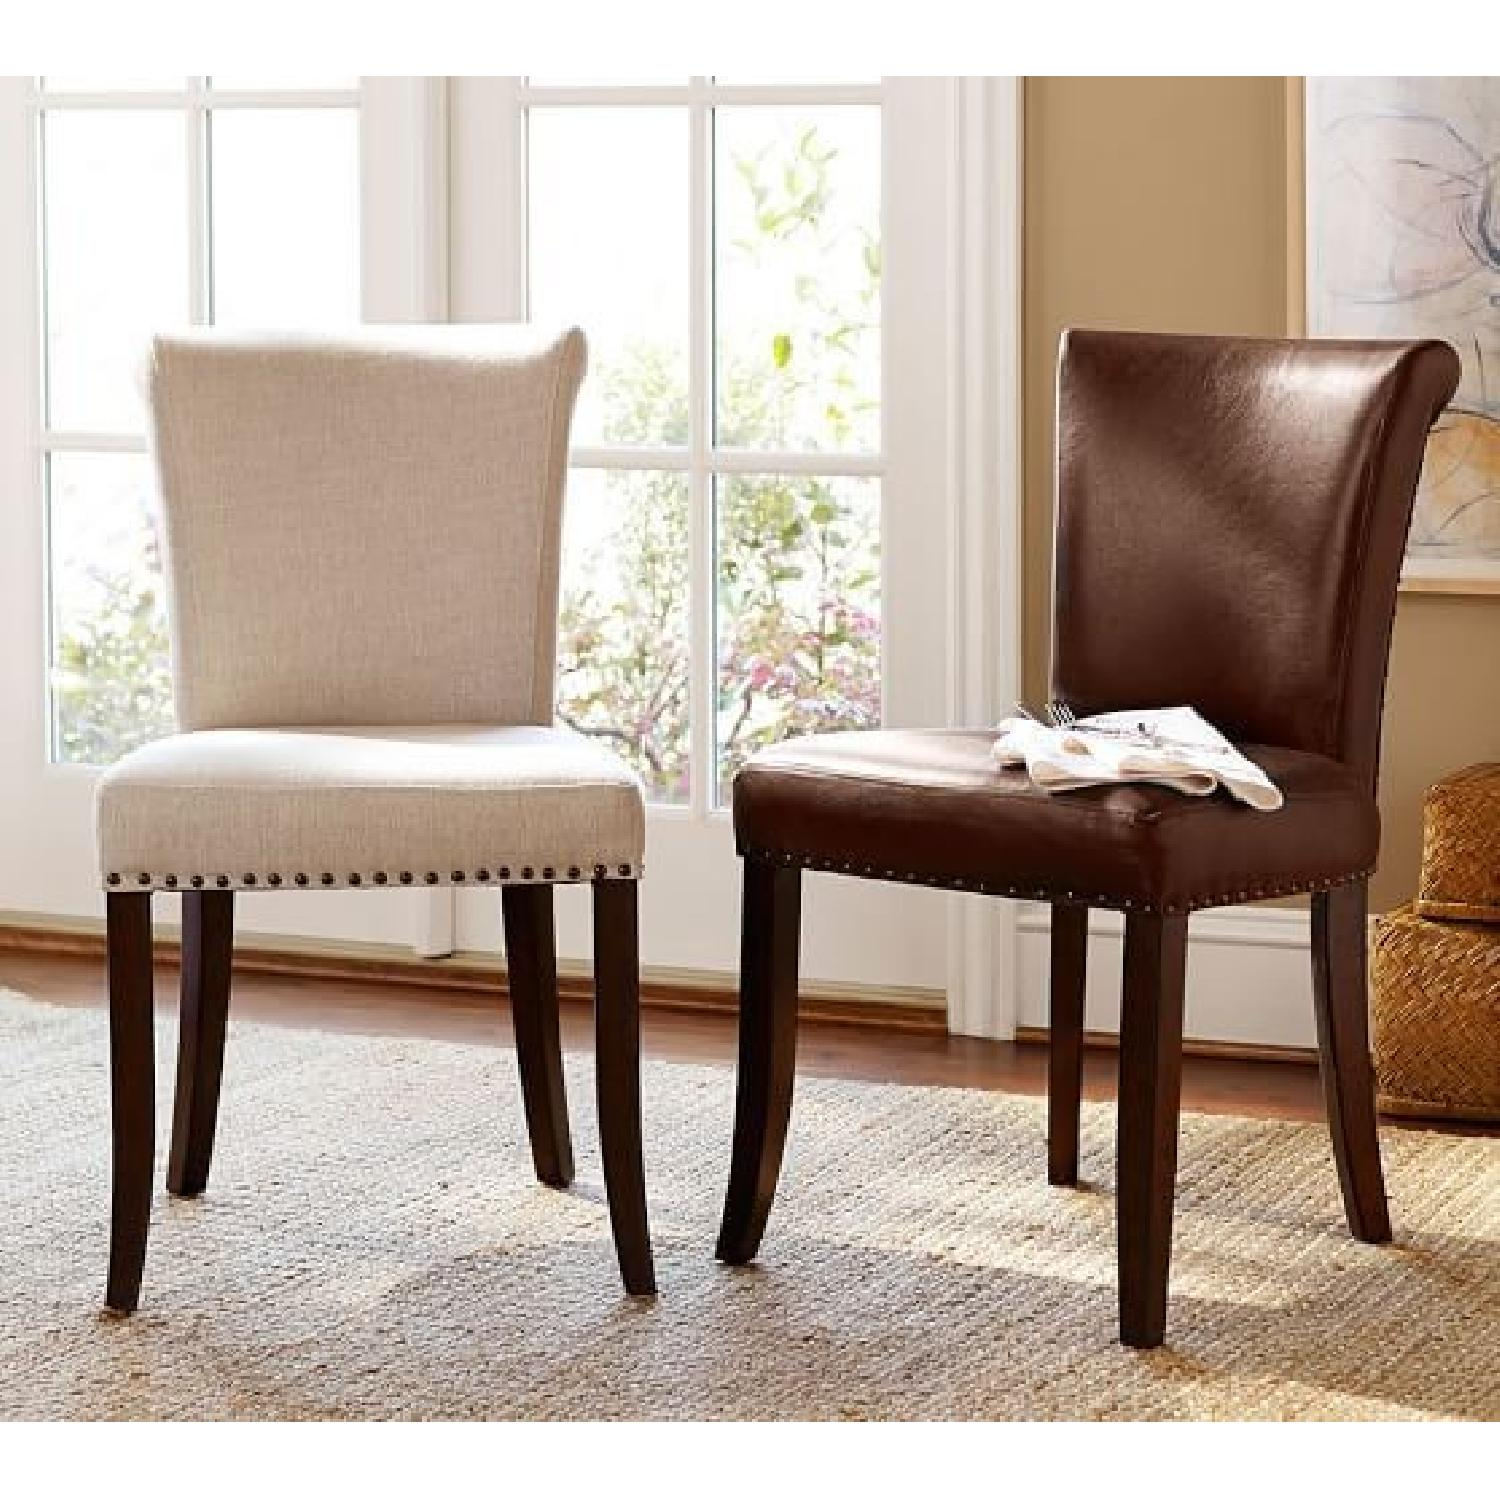 Pottery Barn Dining Furniture Sale: 25% Off Dining Tables ... |Delaney Dining Chair Pottery Barn